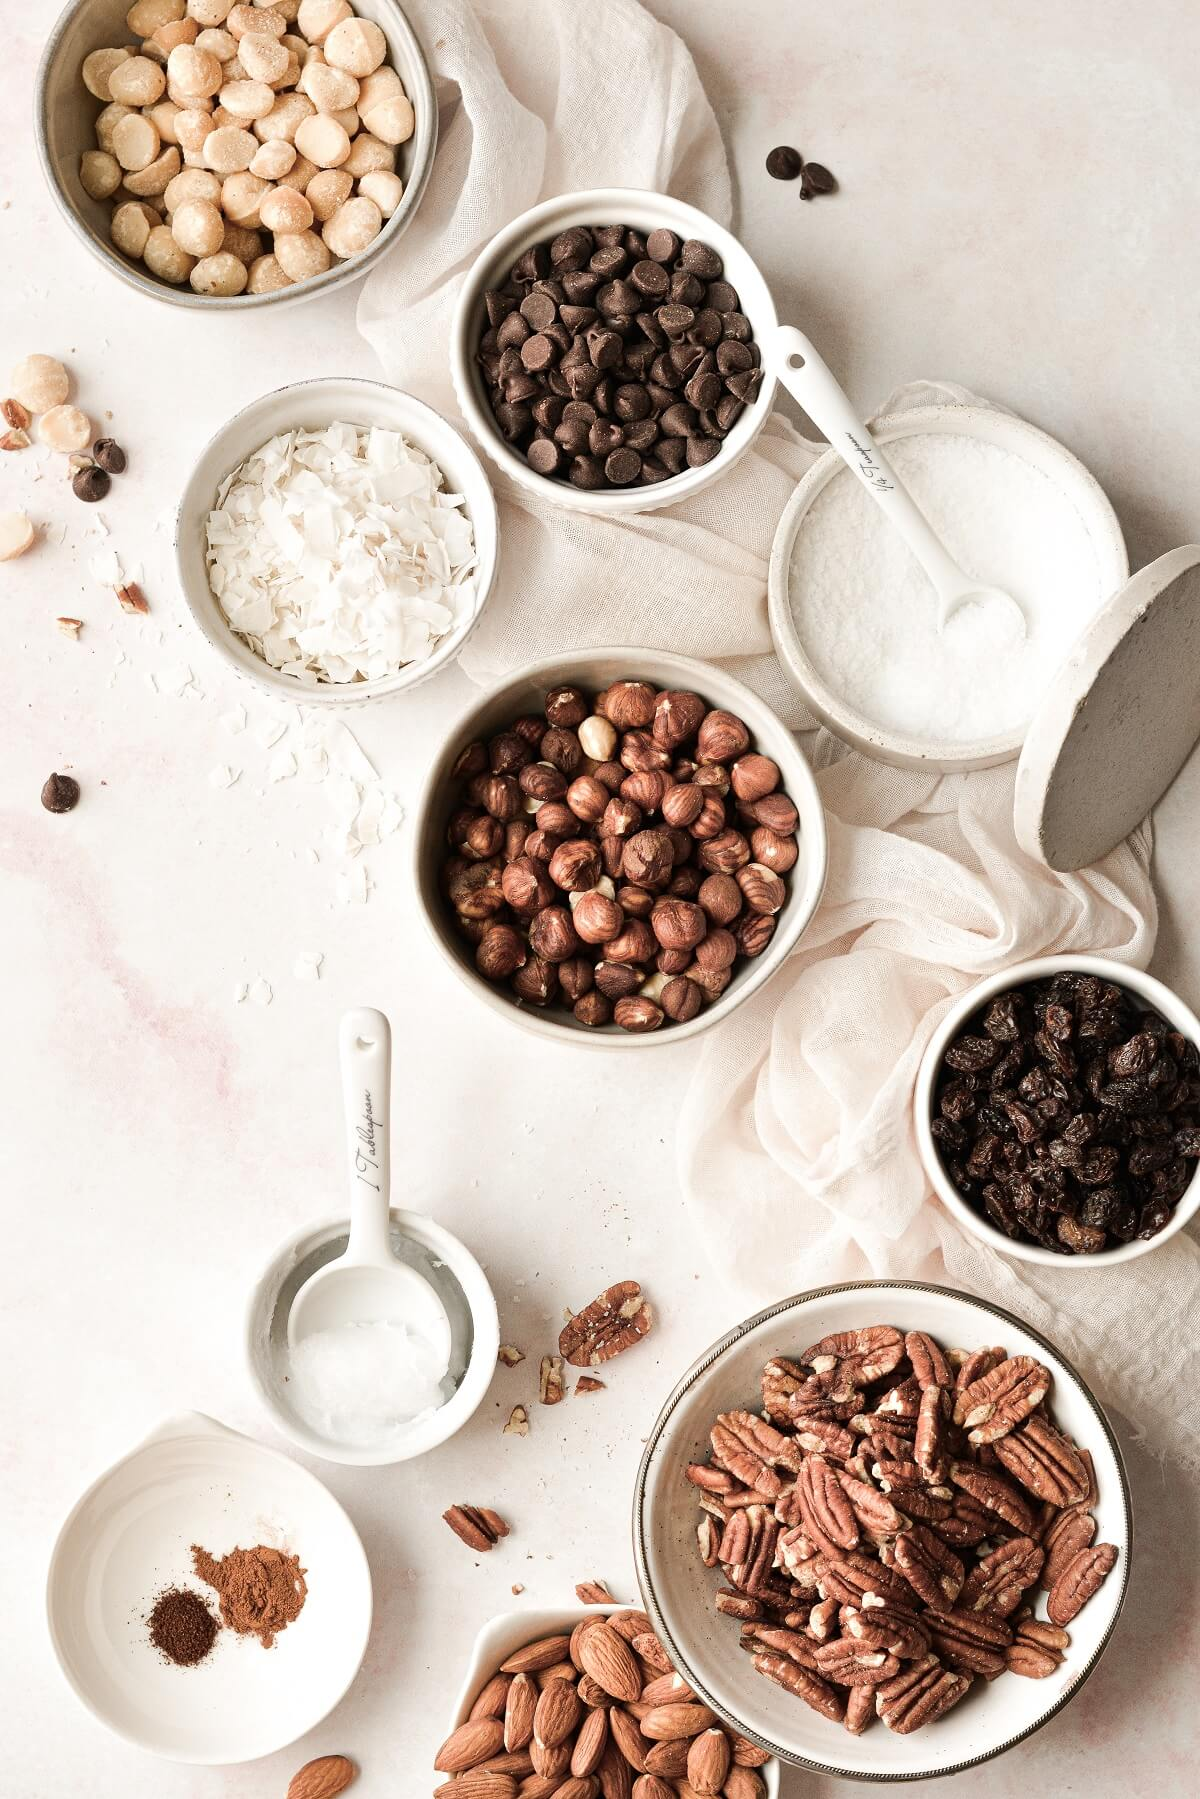 Ingredients laid out for homemade toasted trail mix.